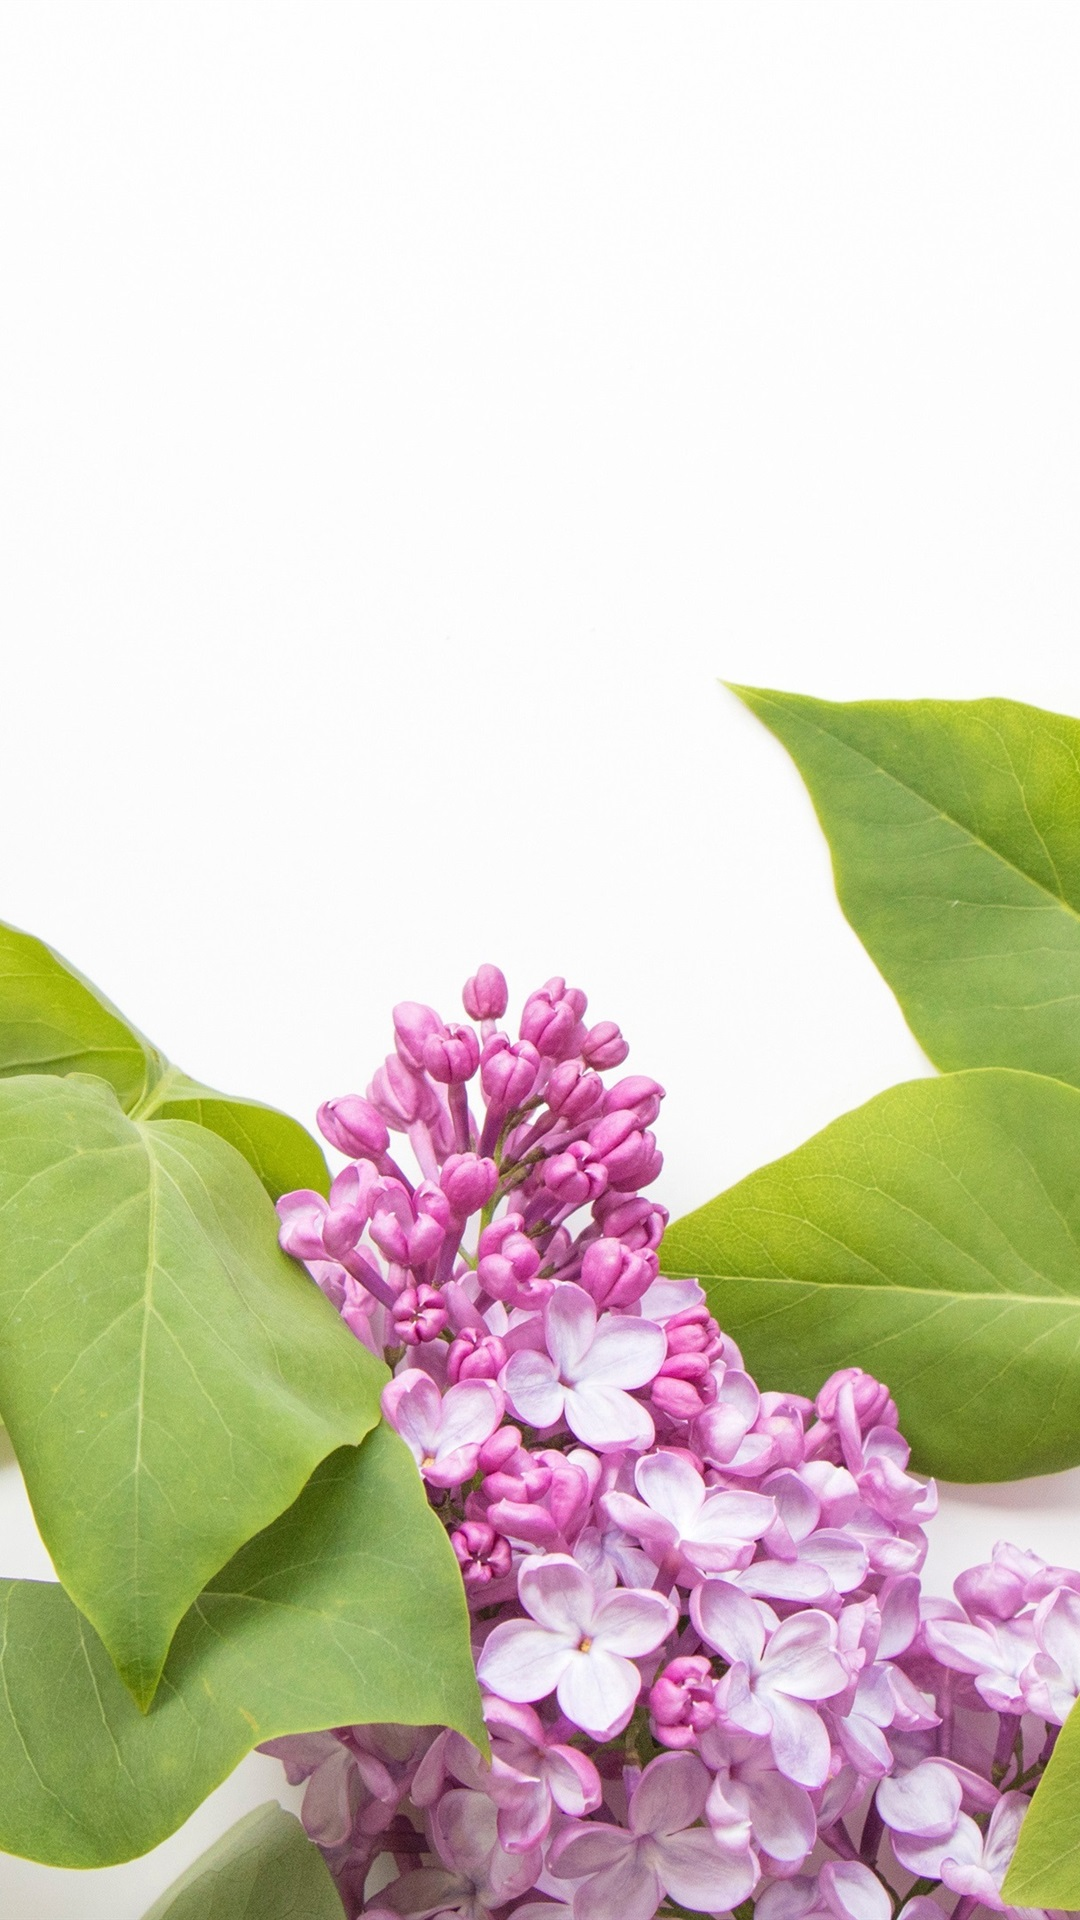 Pink Lilac Flowers White Background 1080x1920 Iphone 876